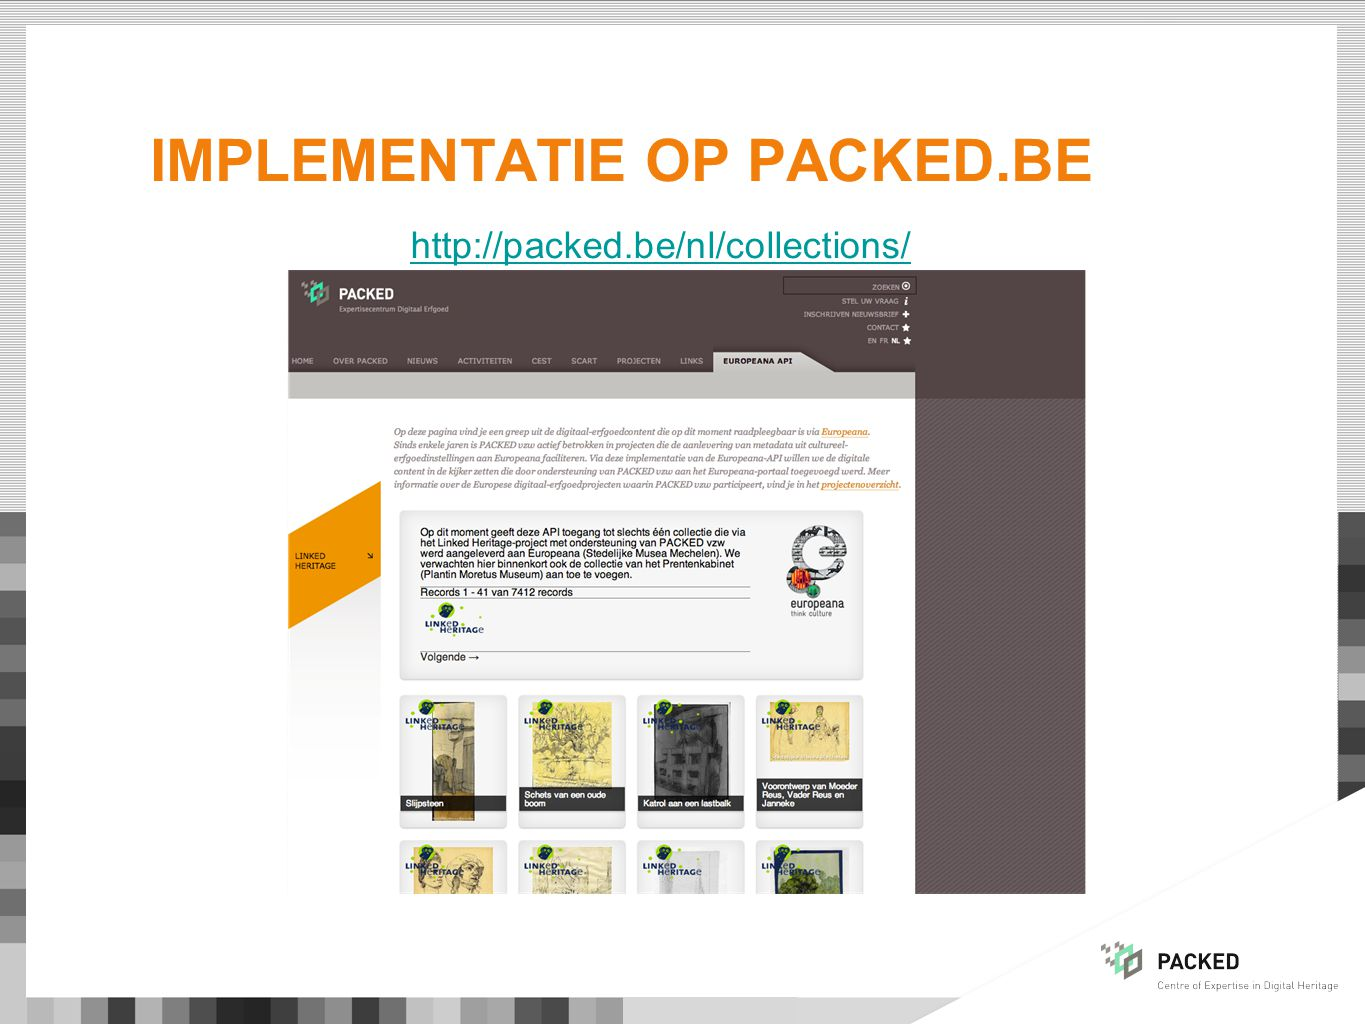 IMPLEMENTATIE OP PACKED.BE http://packed.be/nl/collections/